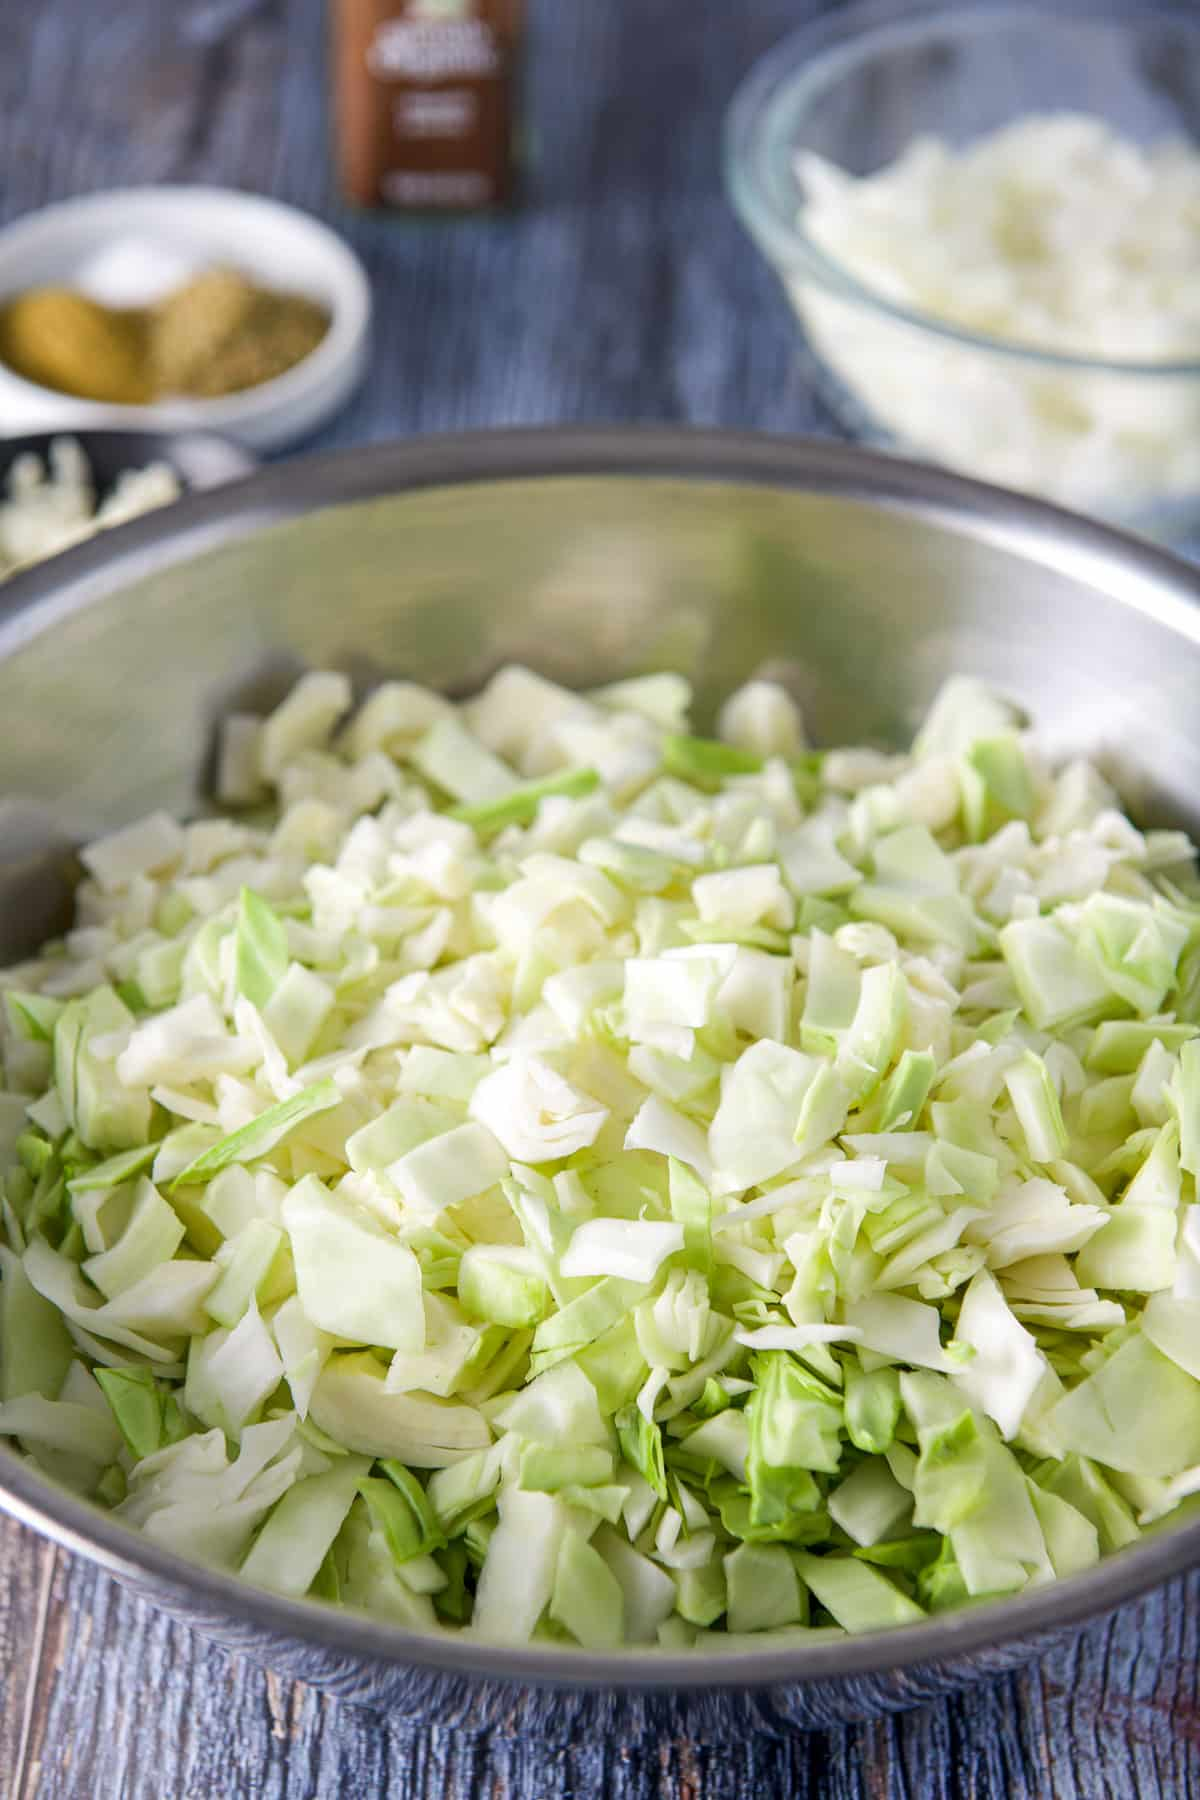 Raw cabbage chopped in a bowl, onions in a bowl and herbs in the back